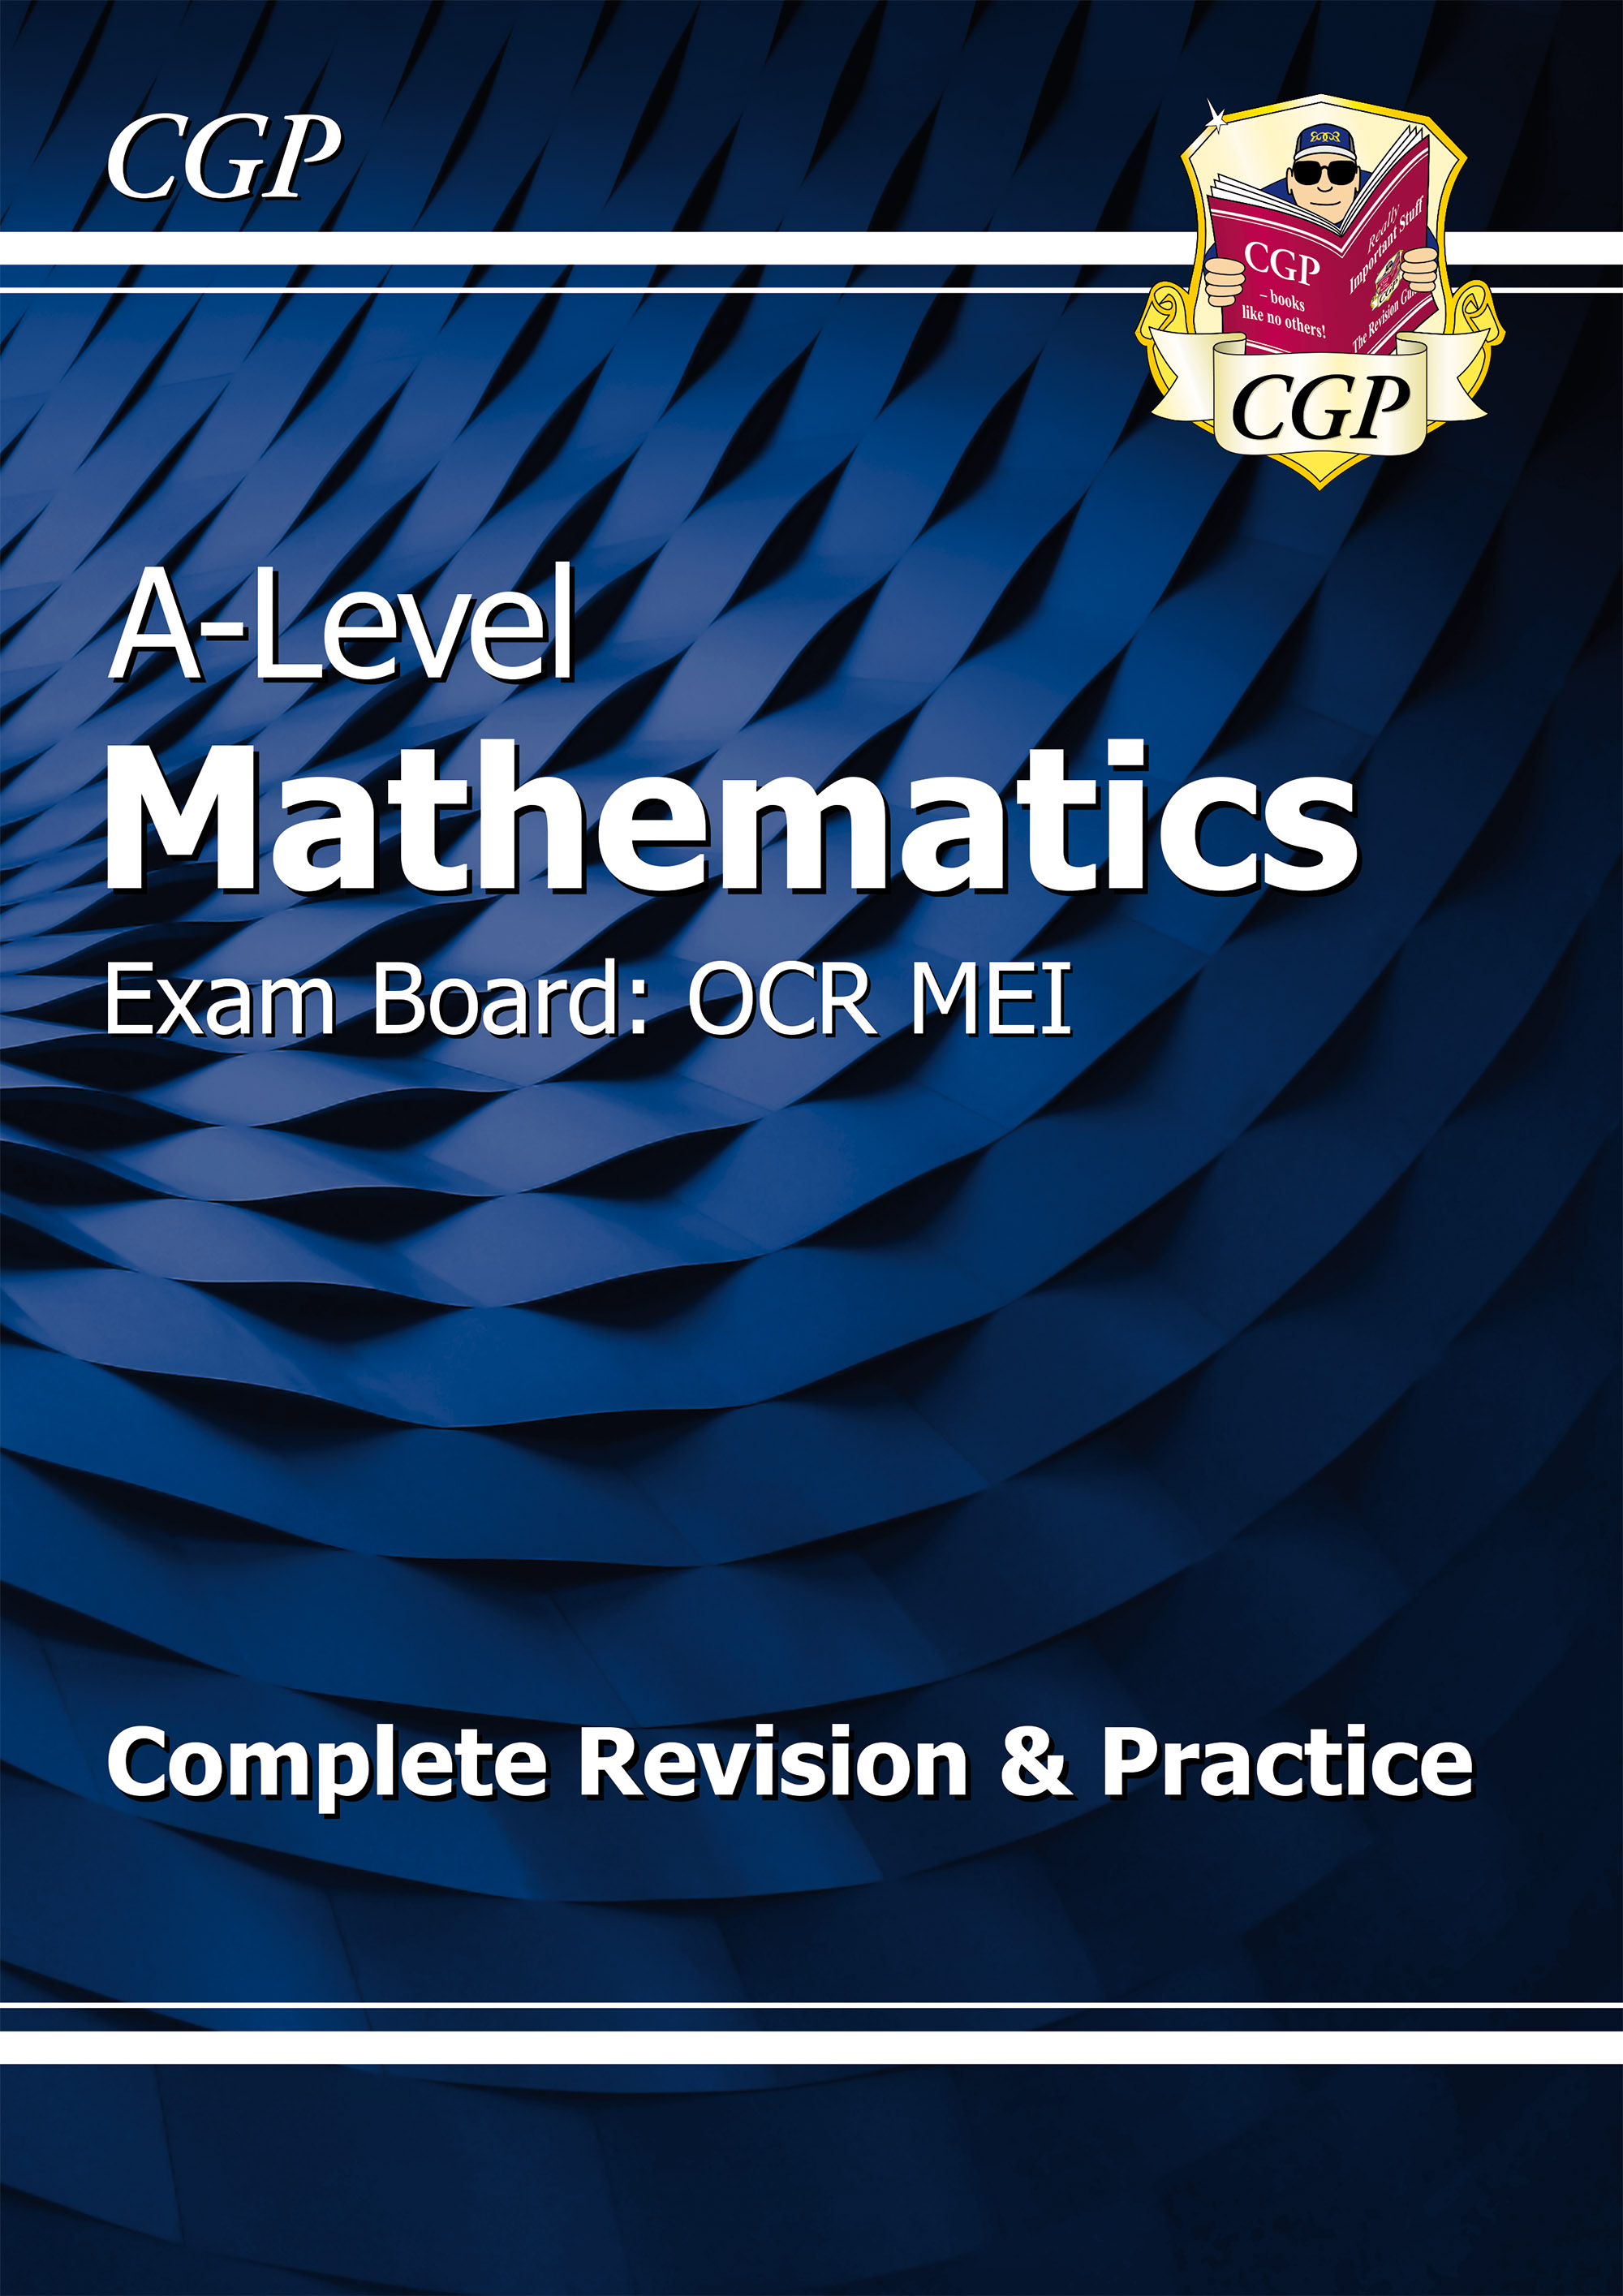 MRMR71DK - New A-Level Maths for OCR MEI: Year 1 & 2 Complete Revision & Practice